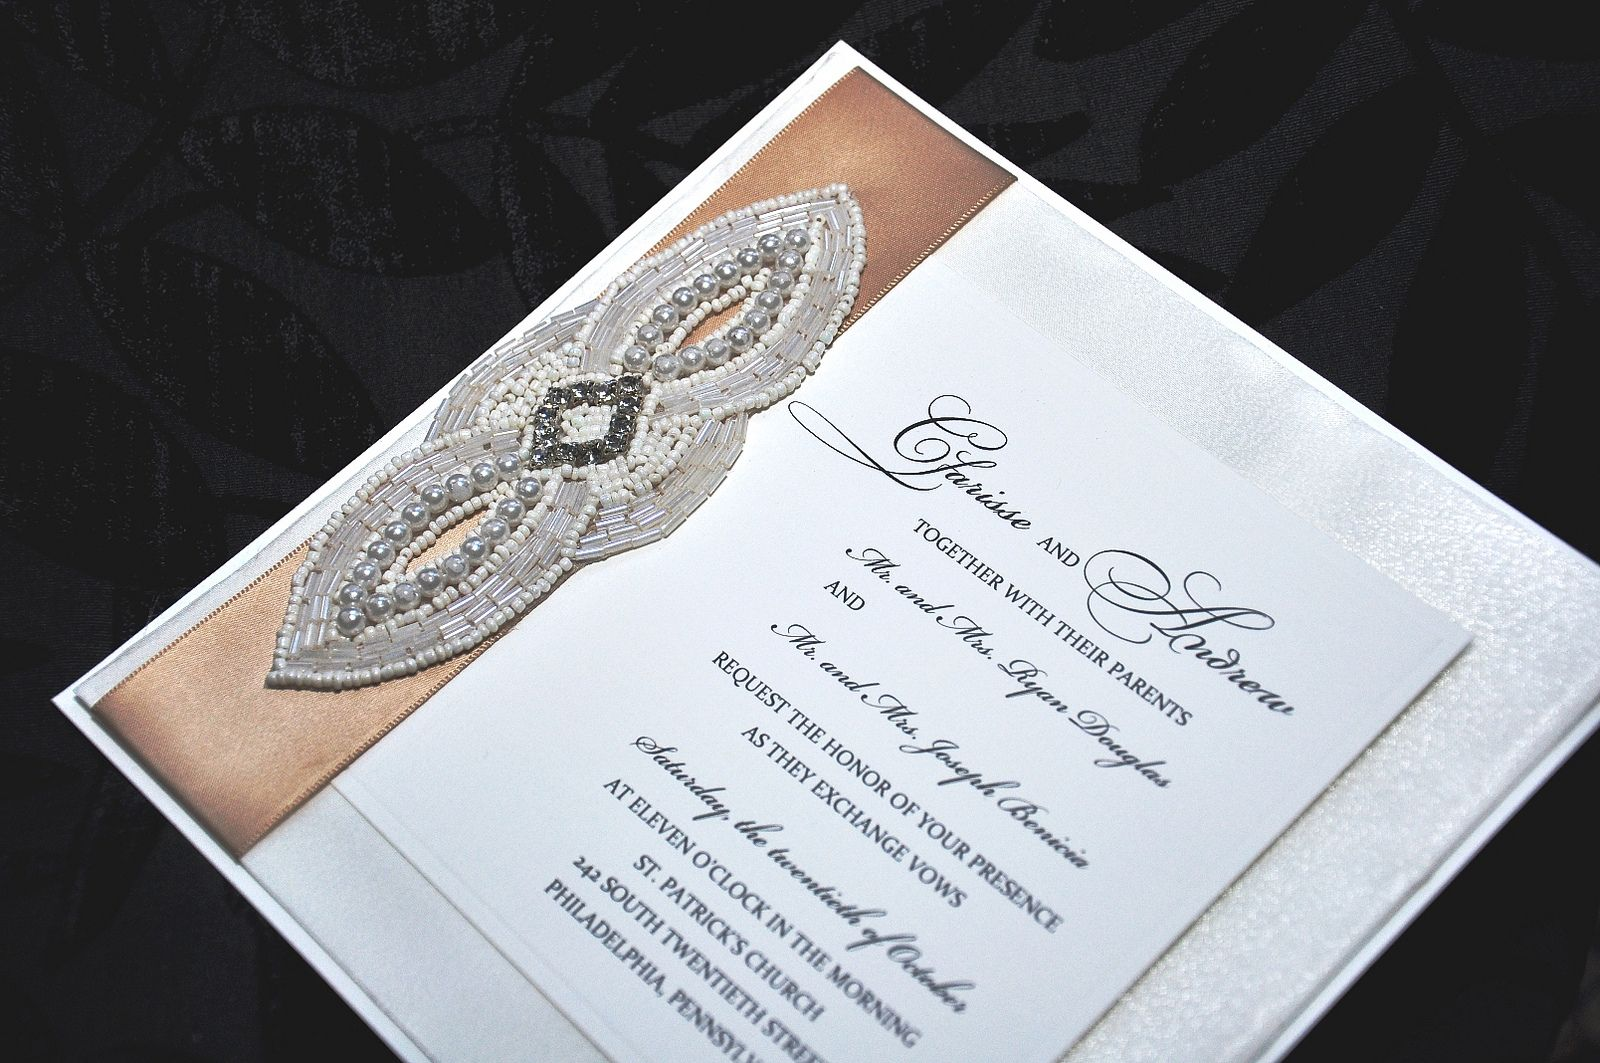 pearls and crystal wedding invitation.   Join us in a workshop to demonstrate how to make your own wedding invitation http://www.uniquelyyoursweddinginvitation.com/creativity-workshops/